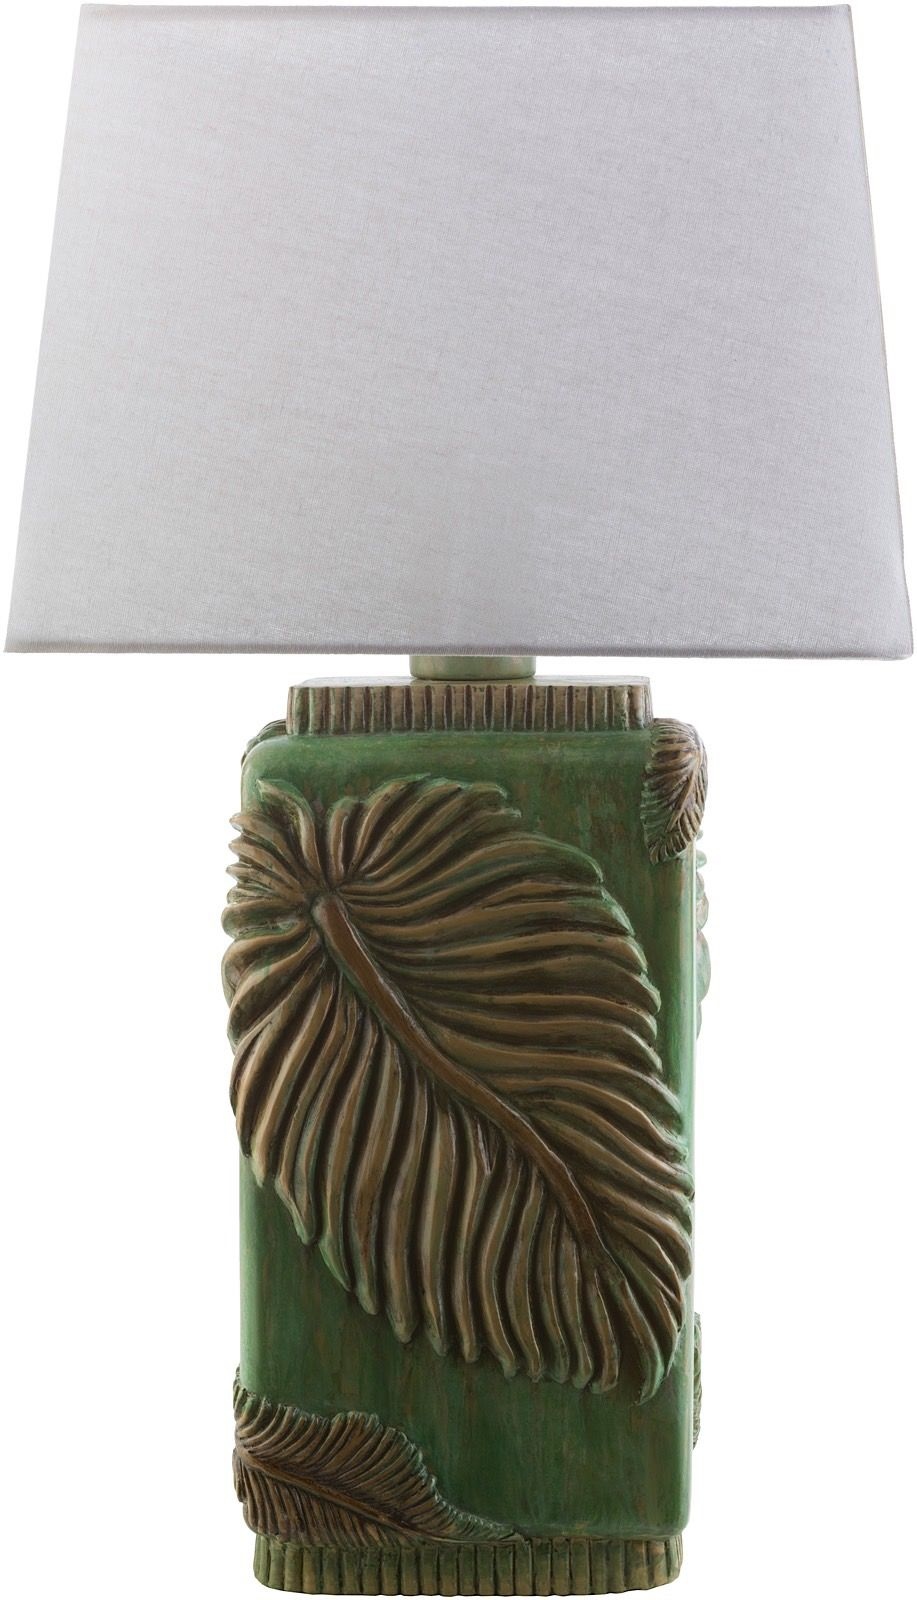 surya lana country & floral table lamp